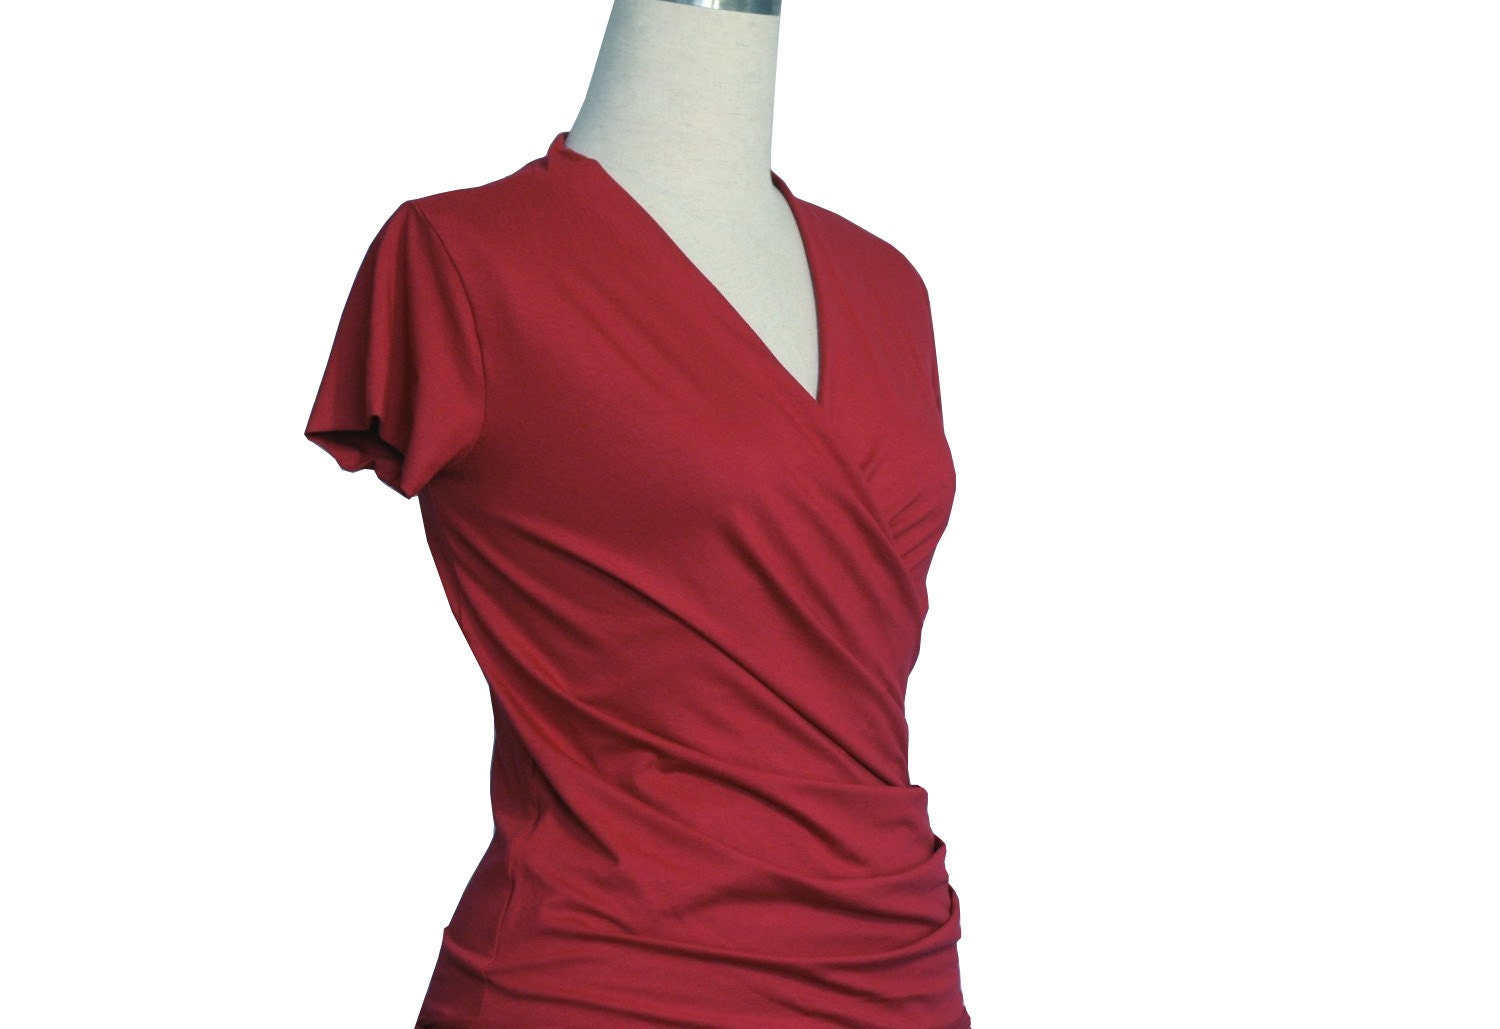 Wrap Top Red Top Summer top Short sleeve Maternity Casual